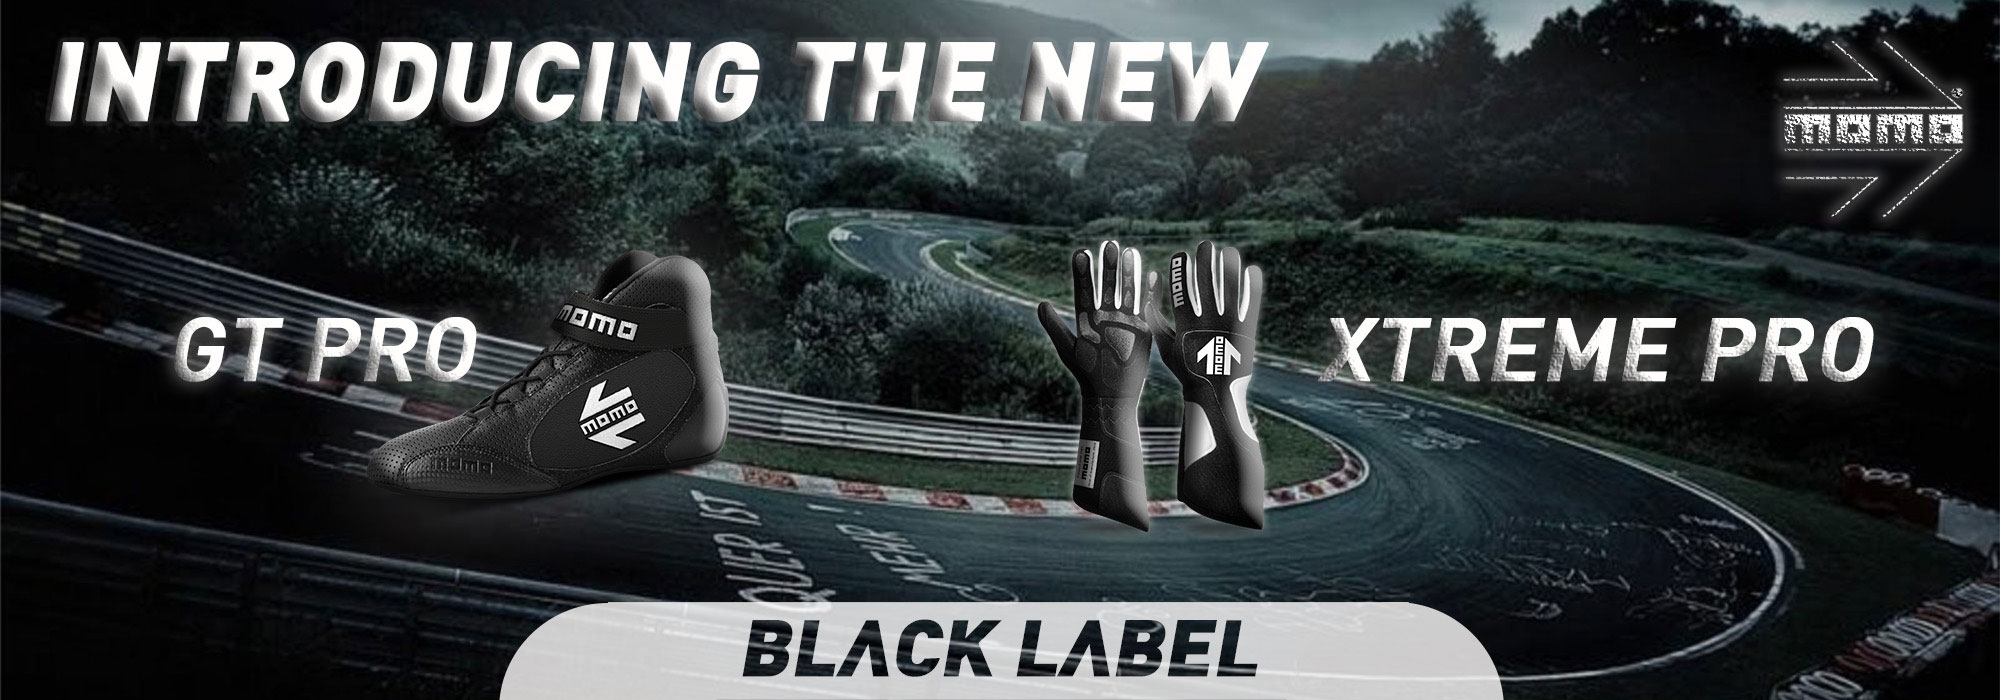 Black Label GT Pro and XTREME Pro